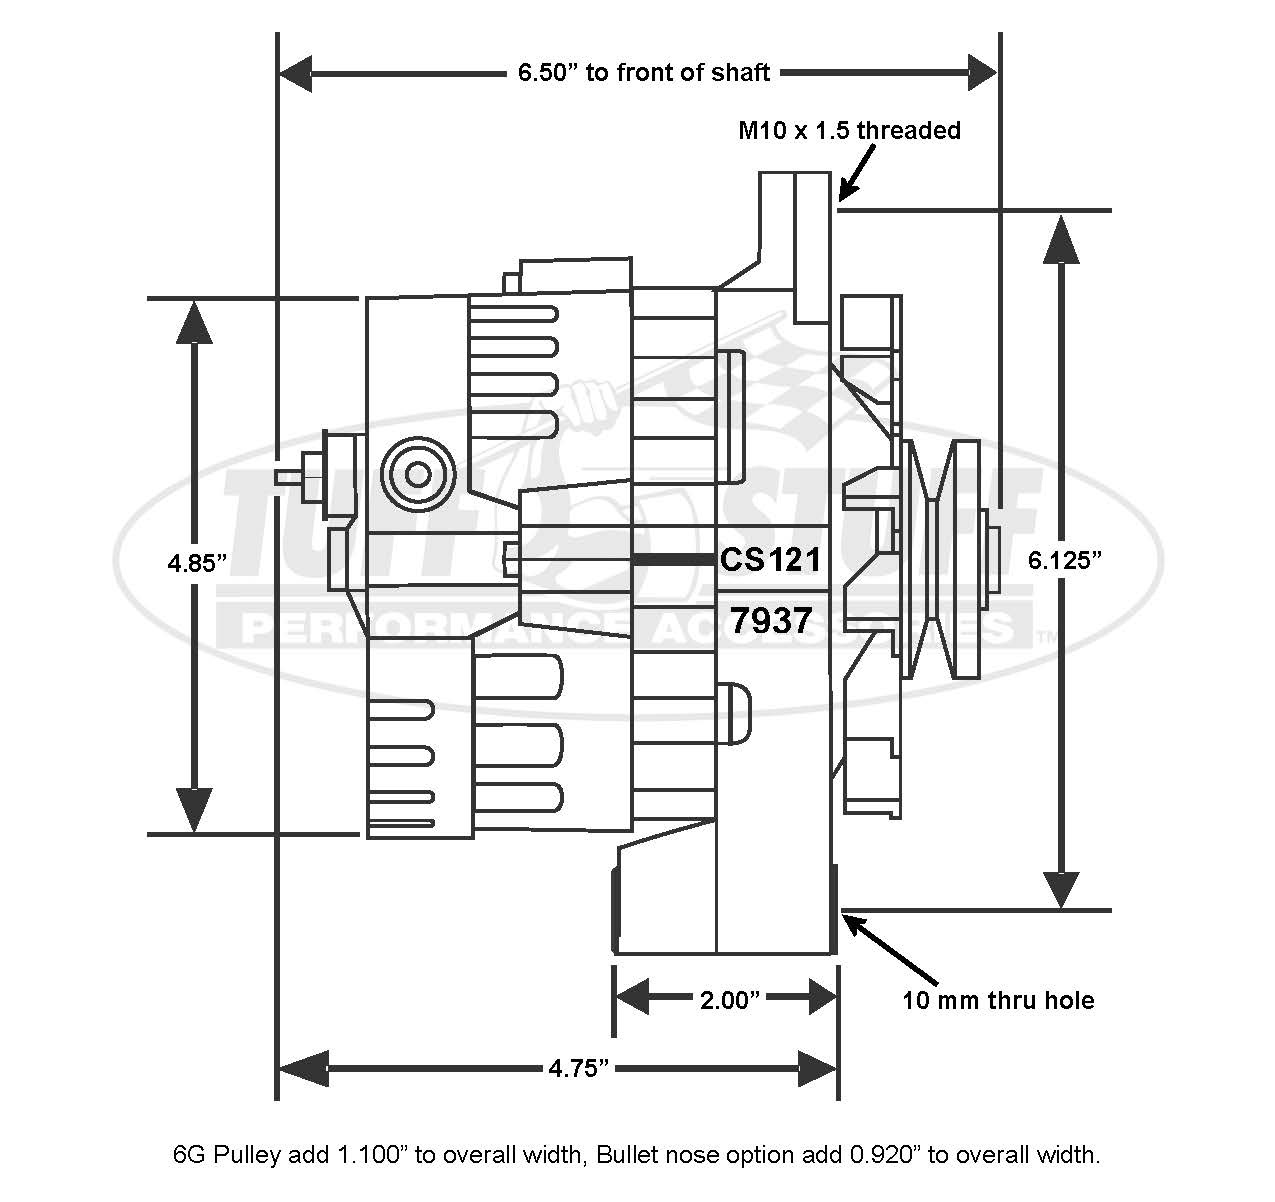 2wire Alternator Diagram Subaru additionally Peugeot 306 Fuse Box additionally 16qpq 1990 Subaru Legacy Running Extremely Rough Slower Speeds together with Svx Wiring Diagram likewise Svx Wiring Harness. on subaru svx ecu wiring diagram